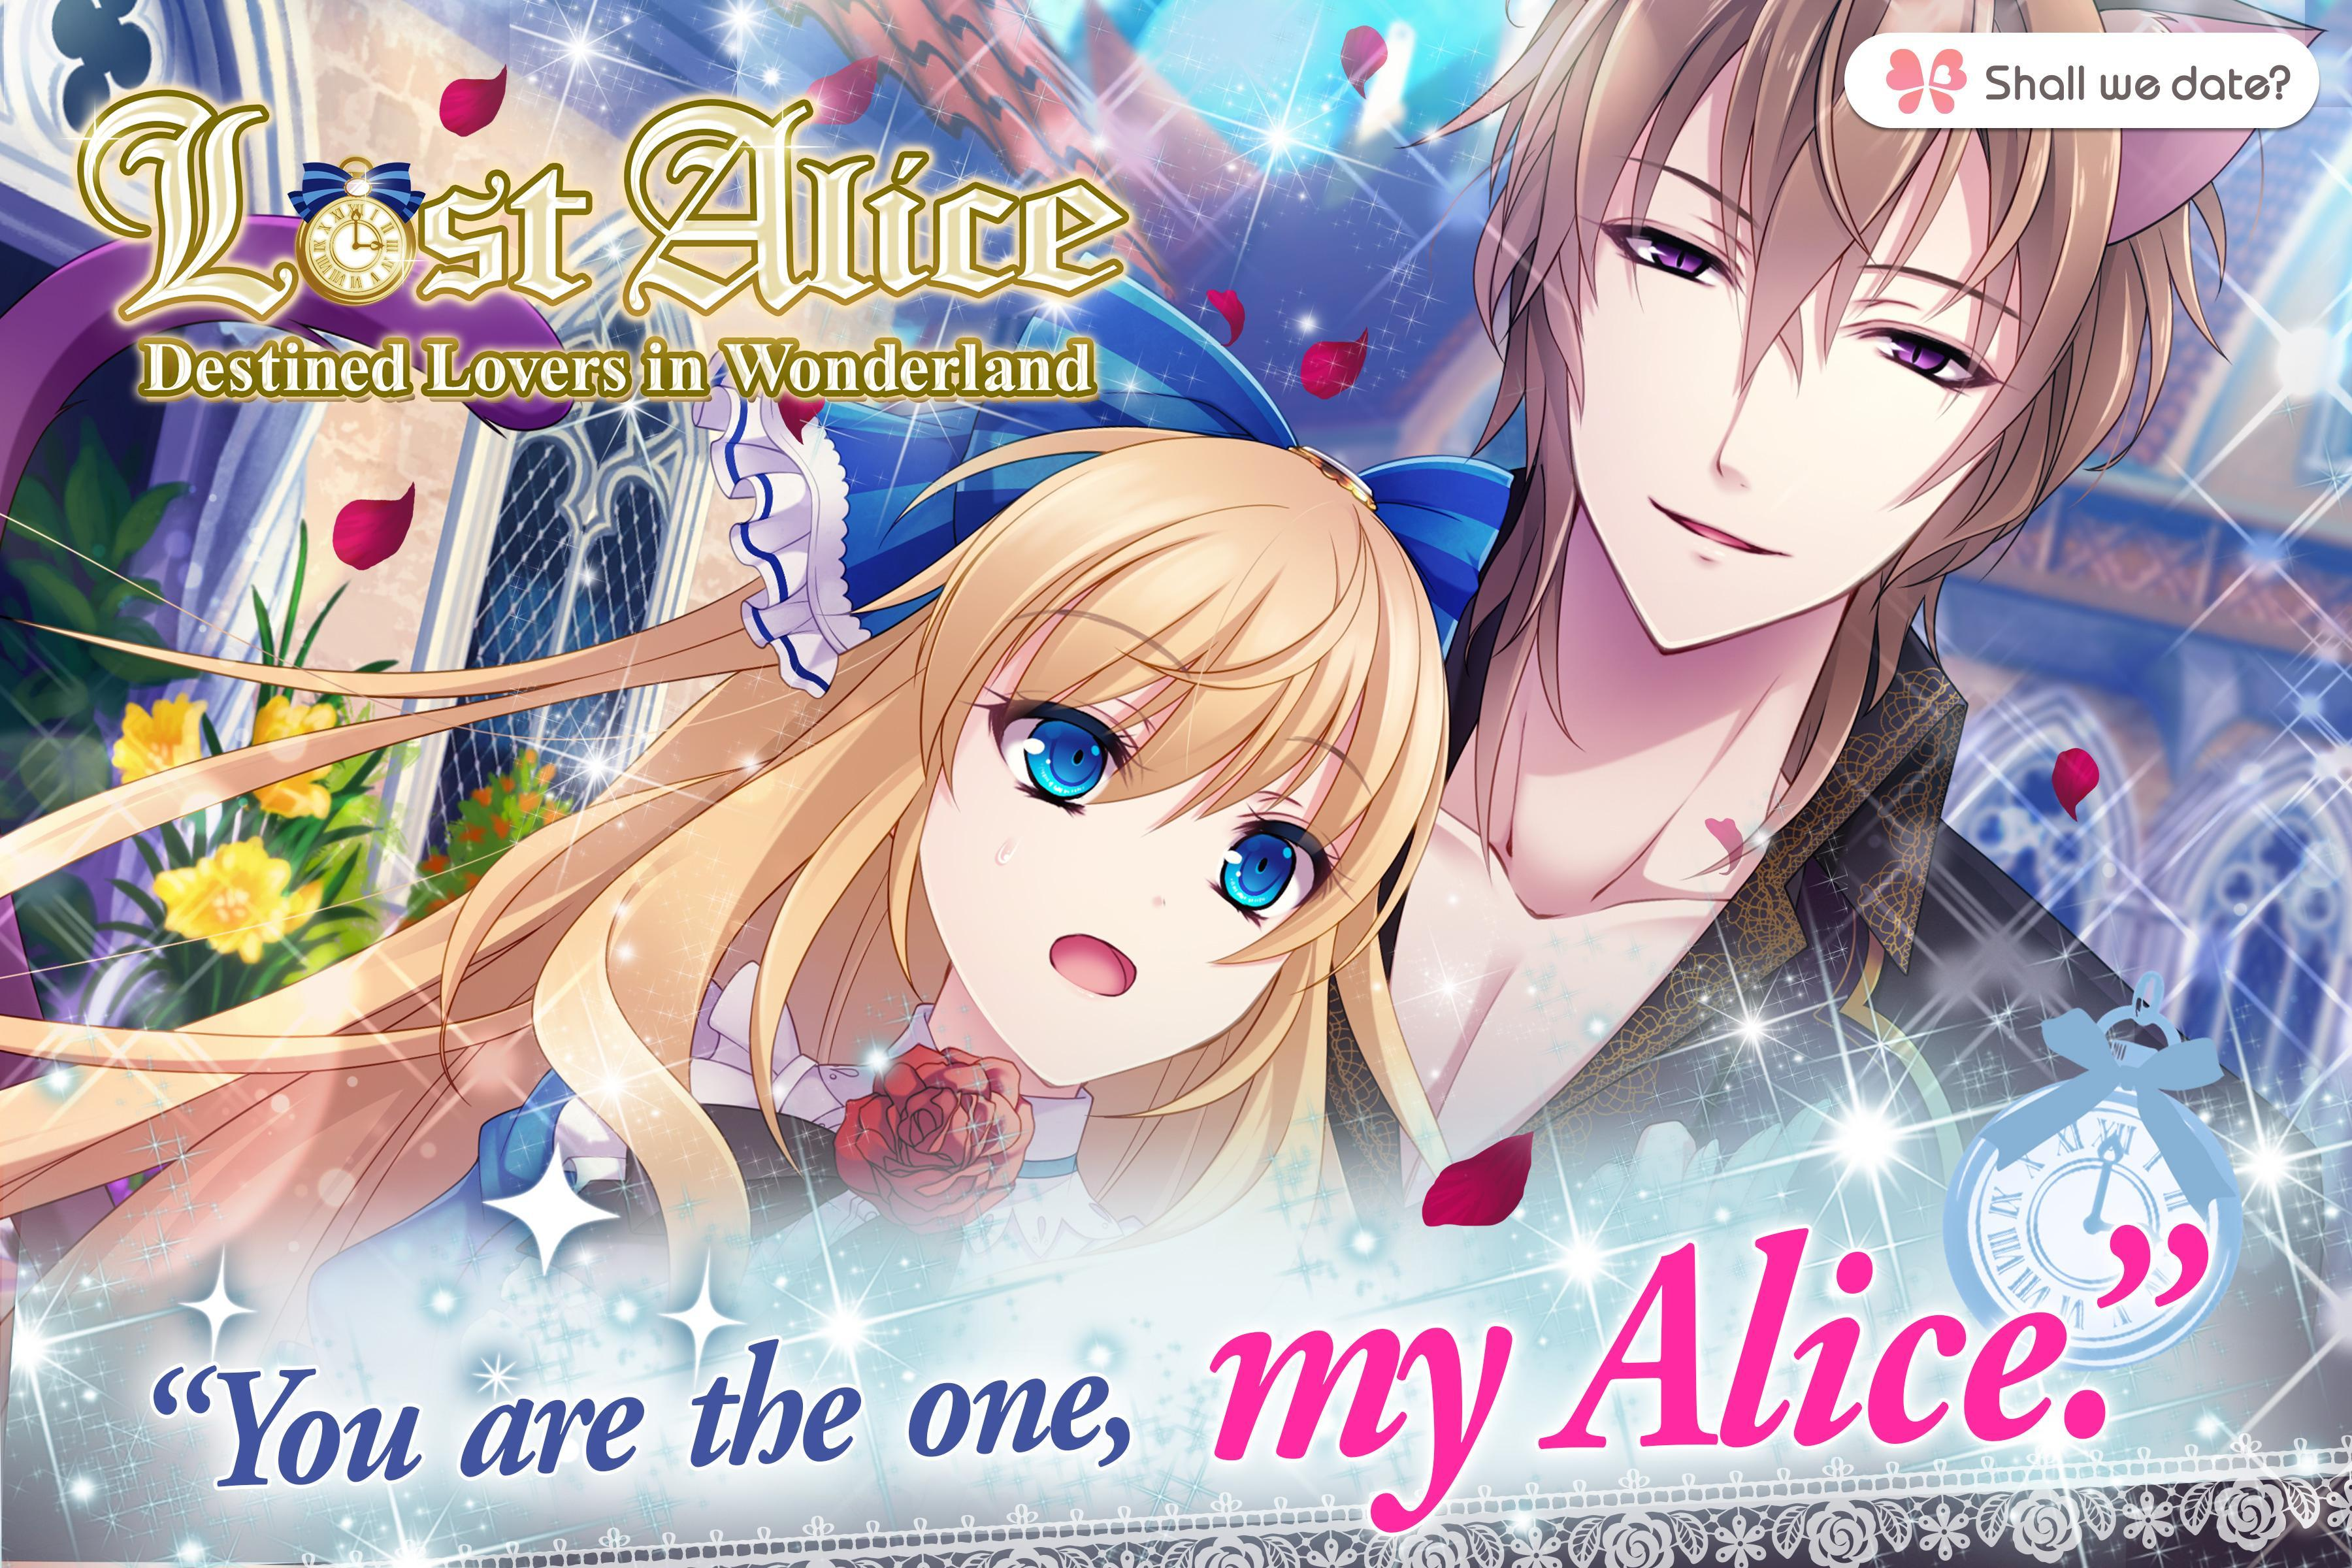 Lost Alice - otome game/dating sim #shall we date 1.5.1 Screenshot 2